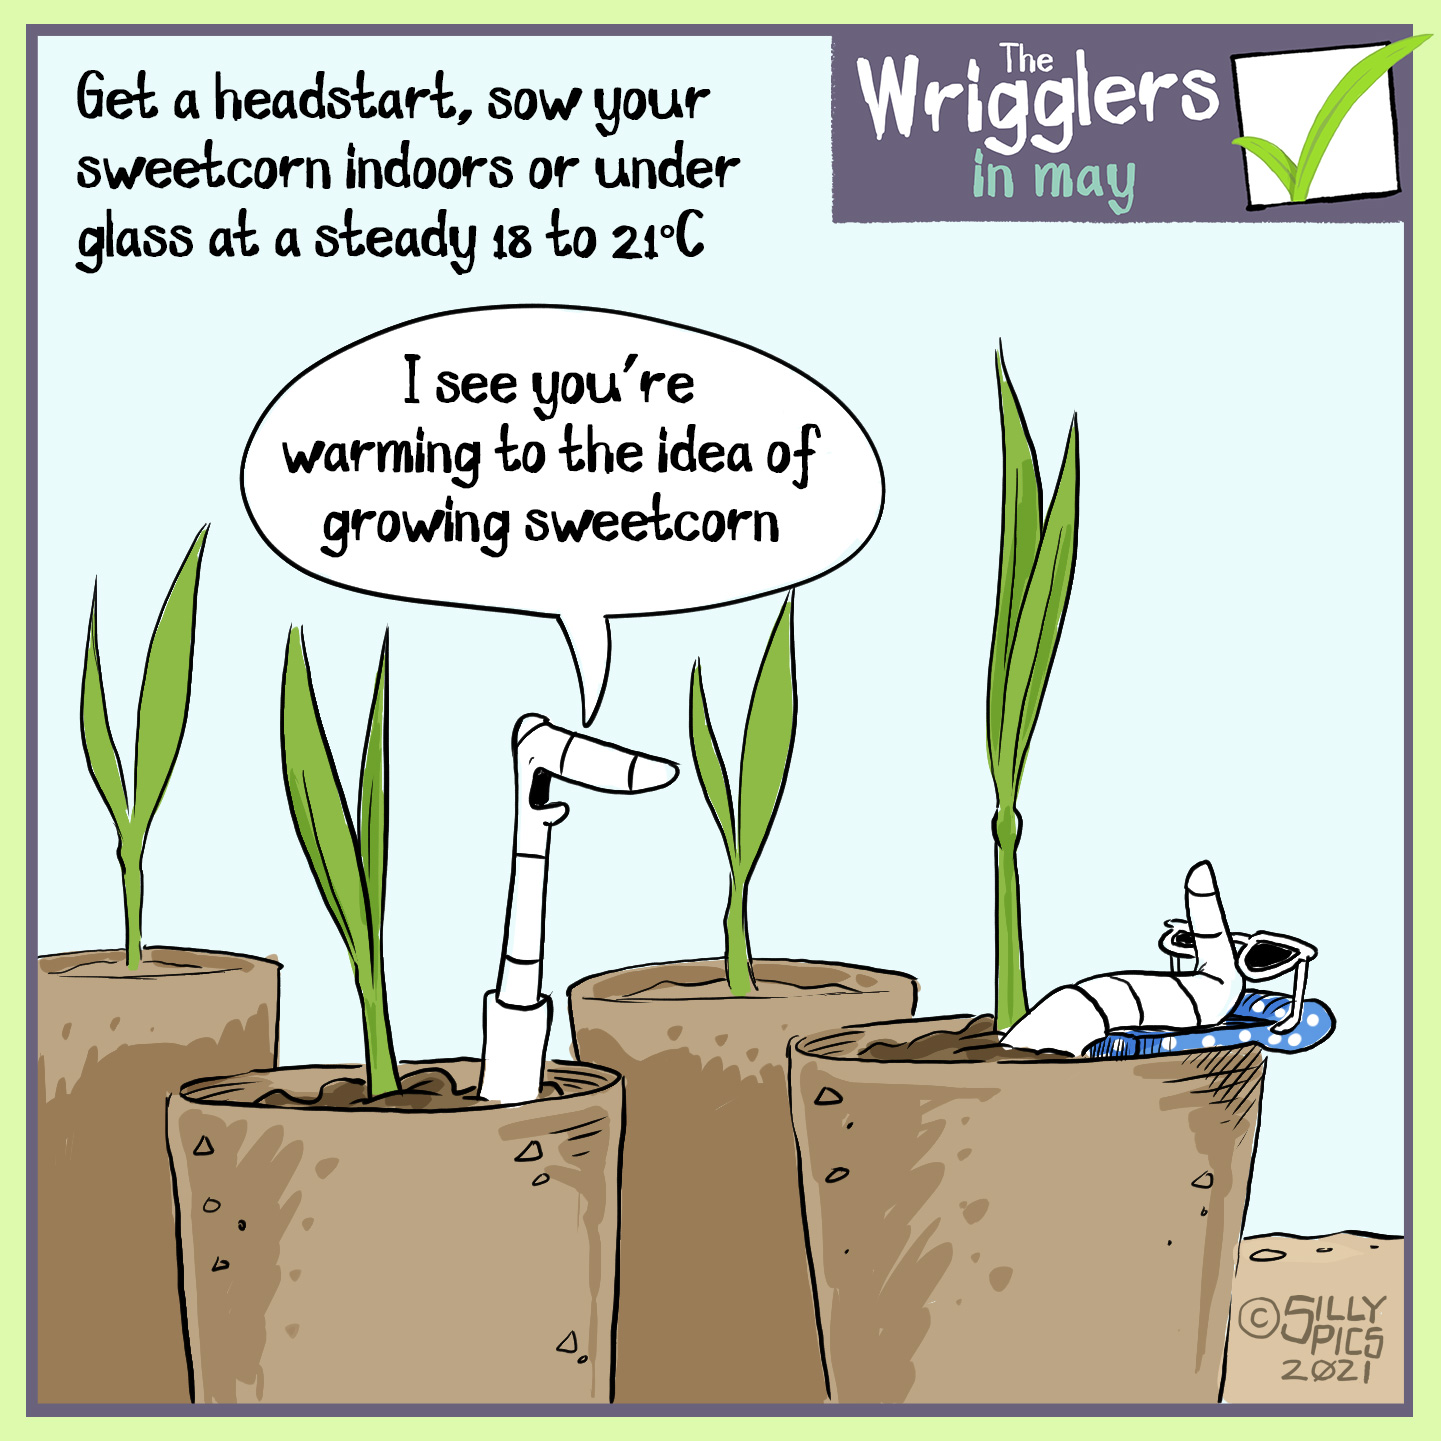 """Get a head start, grow your sweetcorn indoors or under glass at a steady 18-21 degrees. This cartoon shows two worms in sweetcorn seedling pots. One worm is lying back on a beach towel, wearing sunglasses. The other worm says, """"I see you are warming to the idea of growing sweetcorn."""""""